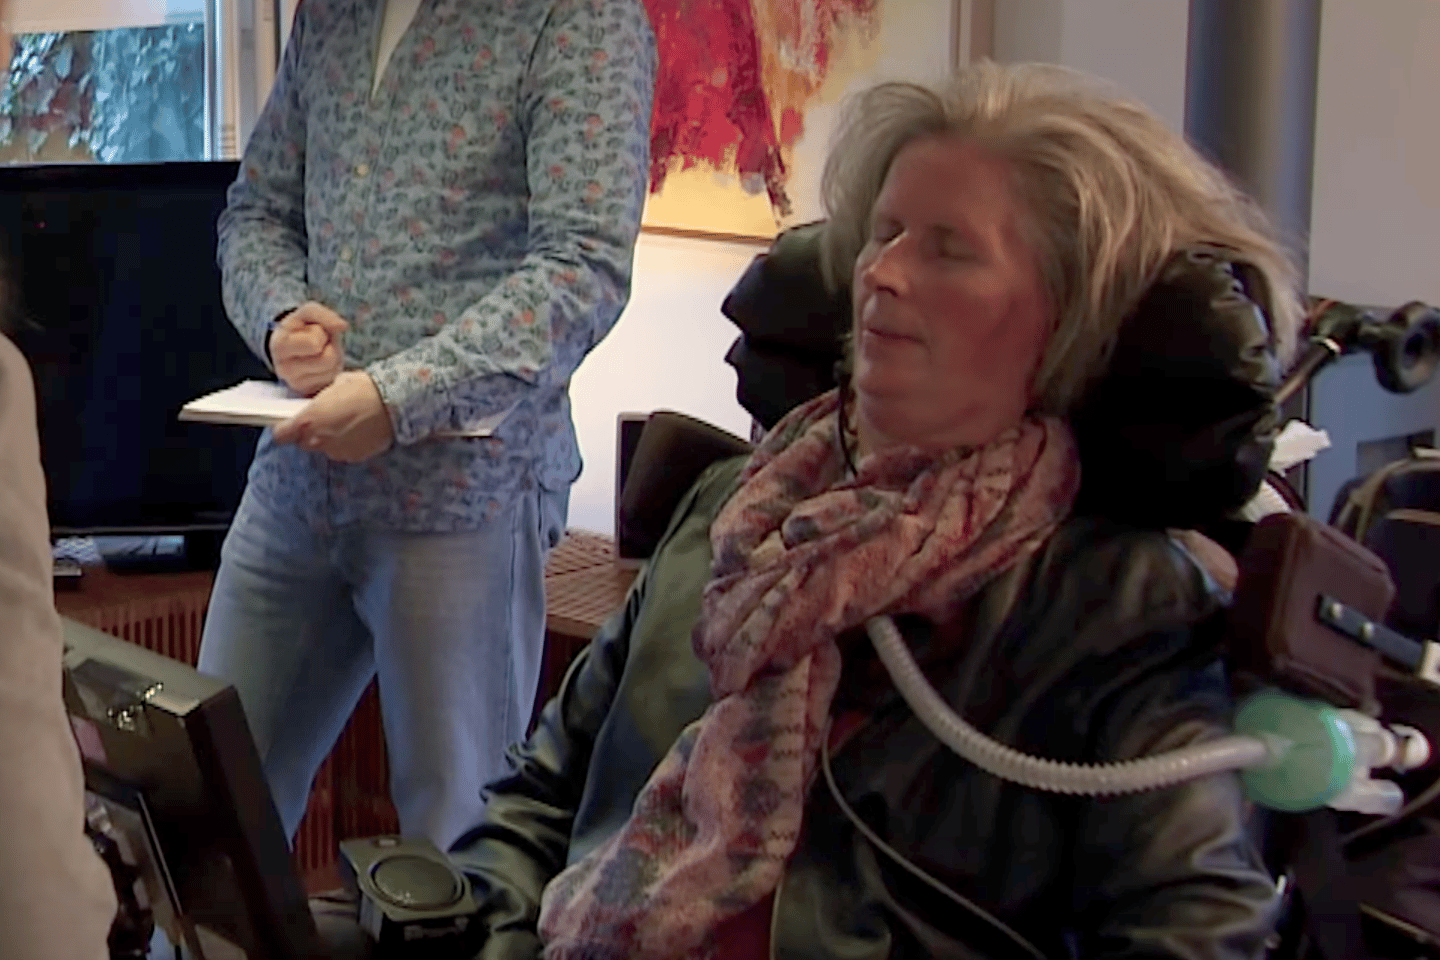 59-year-old mother-of-three Hanneke de Bruijne was diagnosed with ALS (Lou Gehrig's disease) in 2008 and can no longer move or speak, buta brain implant is nowenabling her to operate a speech computer with her mind